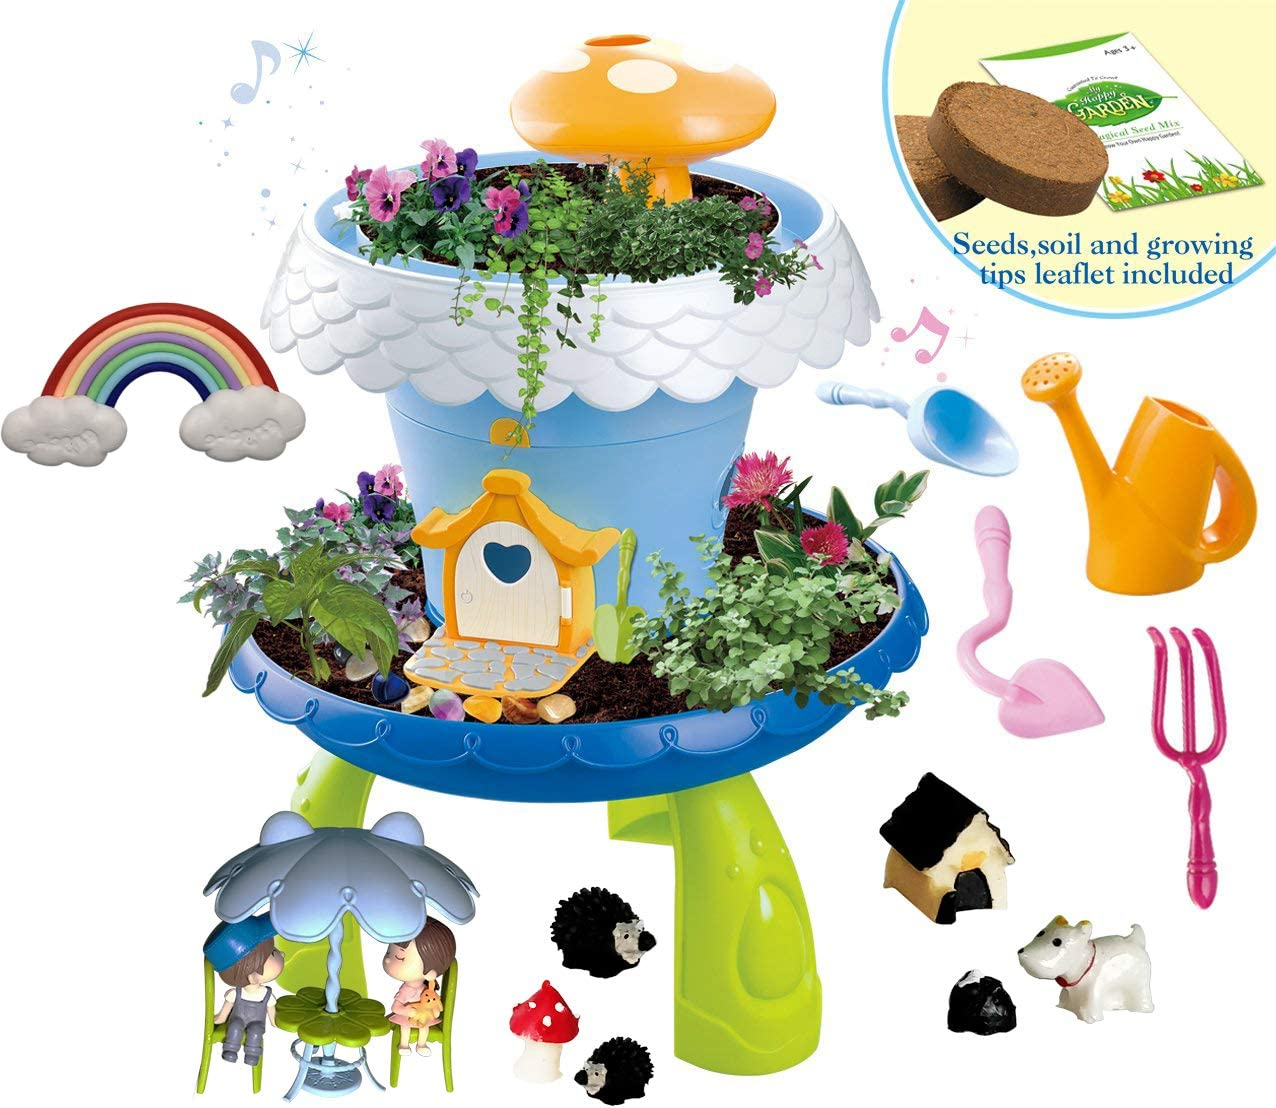 WOWToys Fairy Garden Kit Kids Gardening Set Indoor Outdoor Play Activity Gardening Tool Set Toys Kids Toddlers Girls Boys (Blue has Music A)